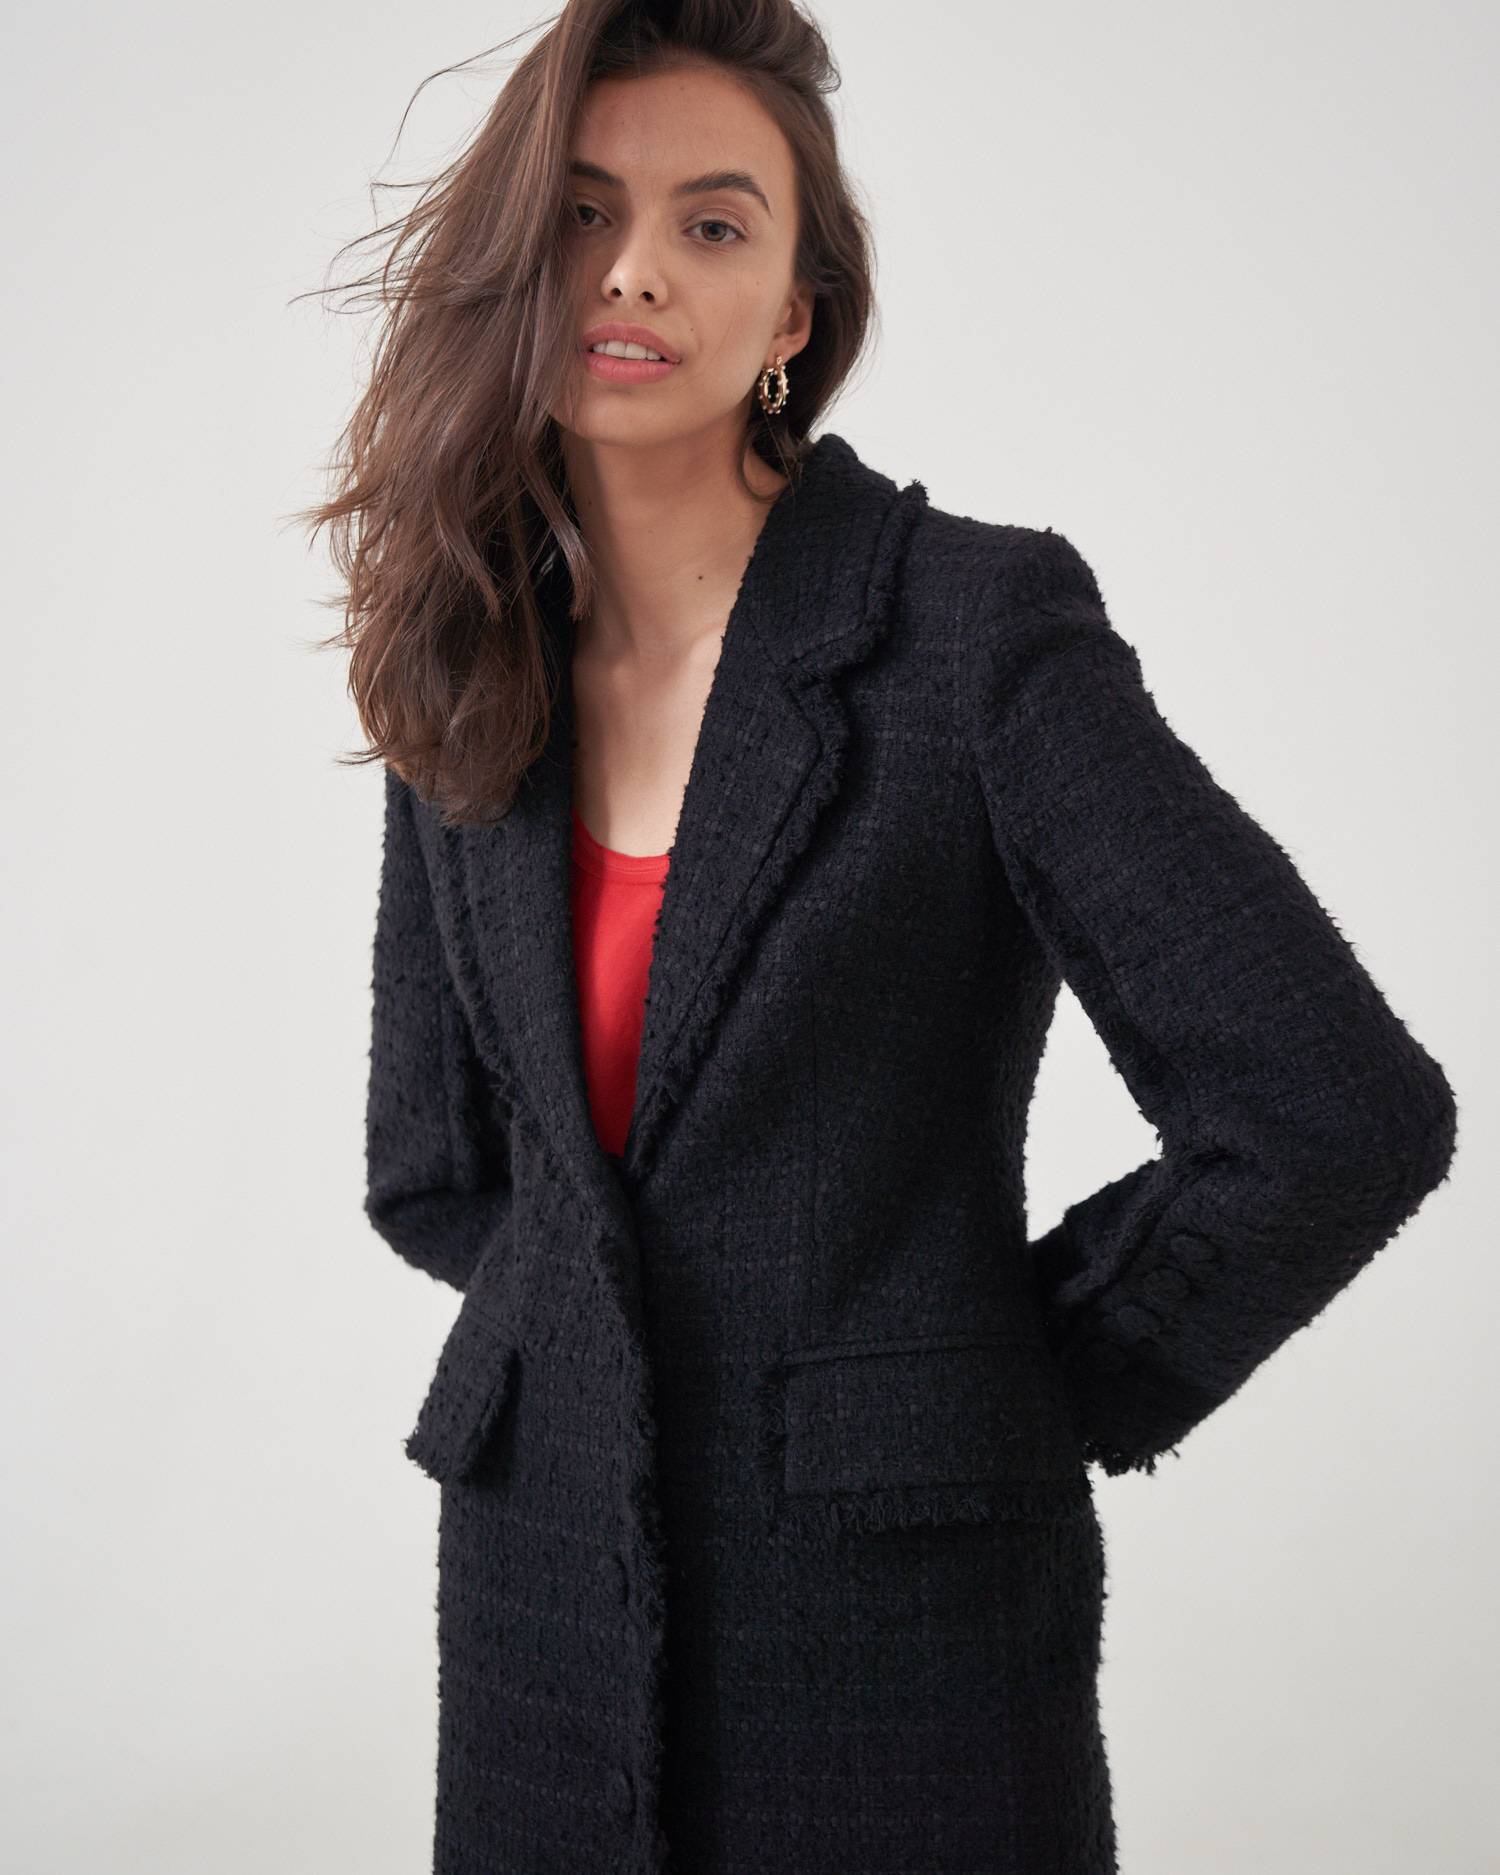 Coat-style tweed boucle jacket